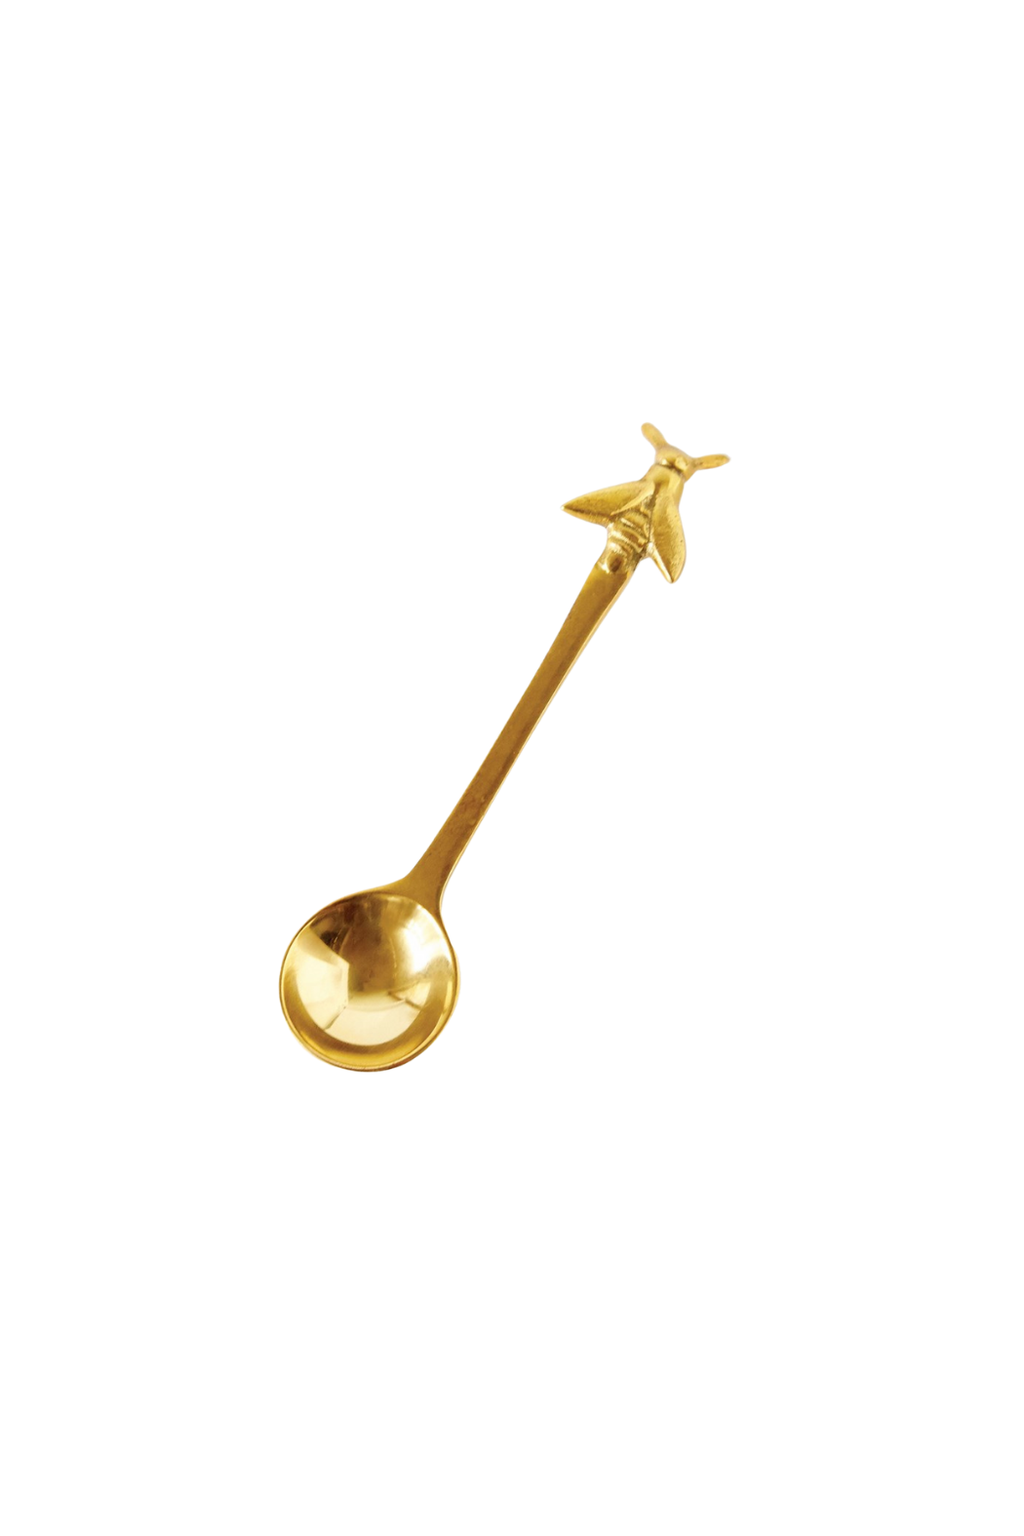 Creative Co-op Honeybee Brass Spoon